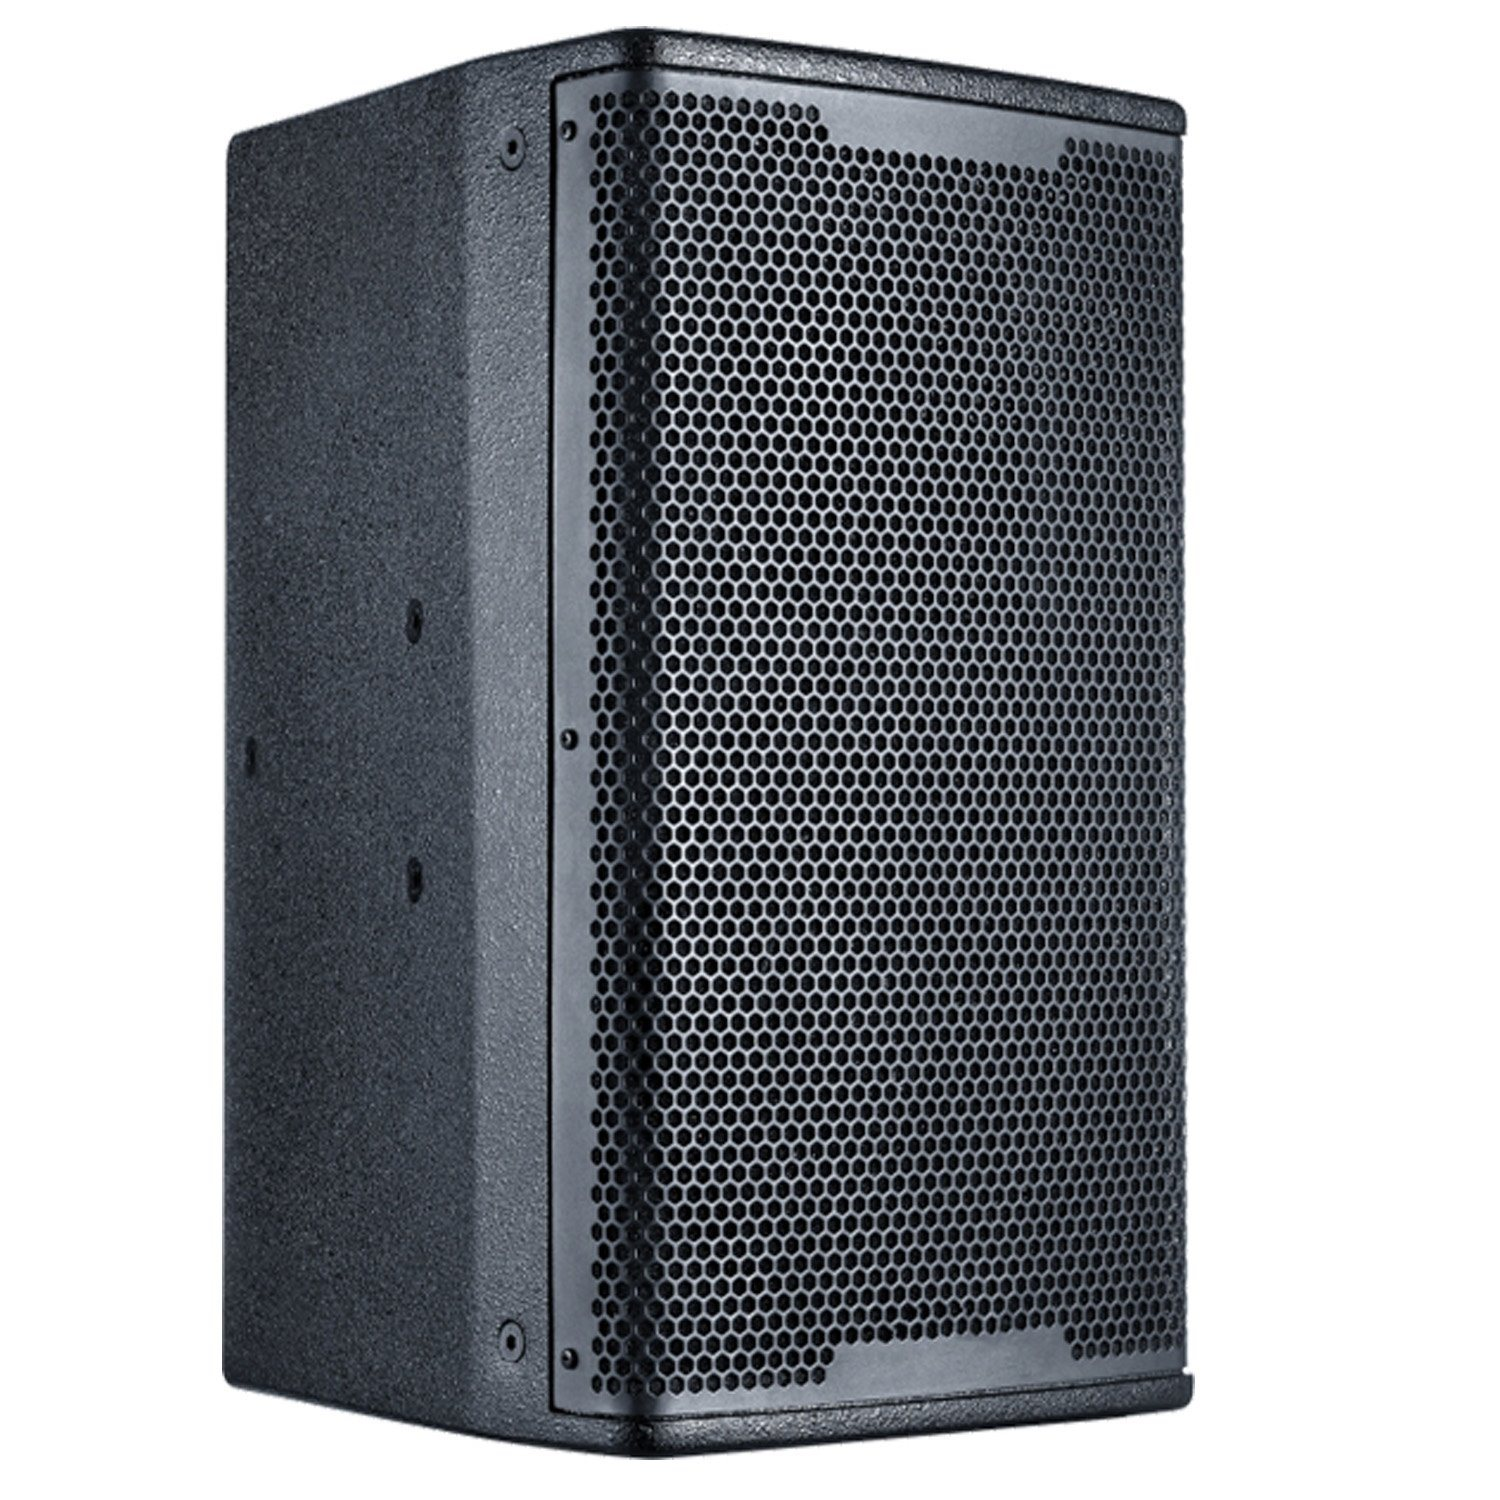 Public Address Professional Loundspeaker a-10 Series